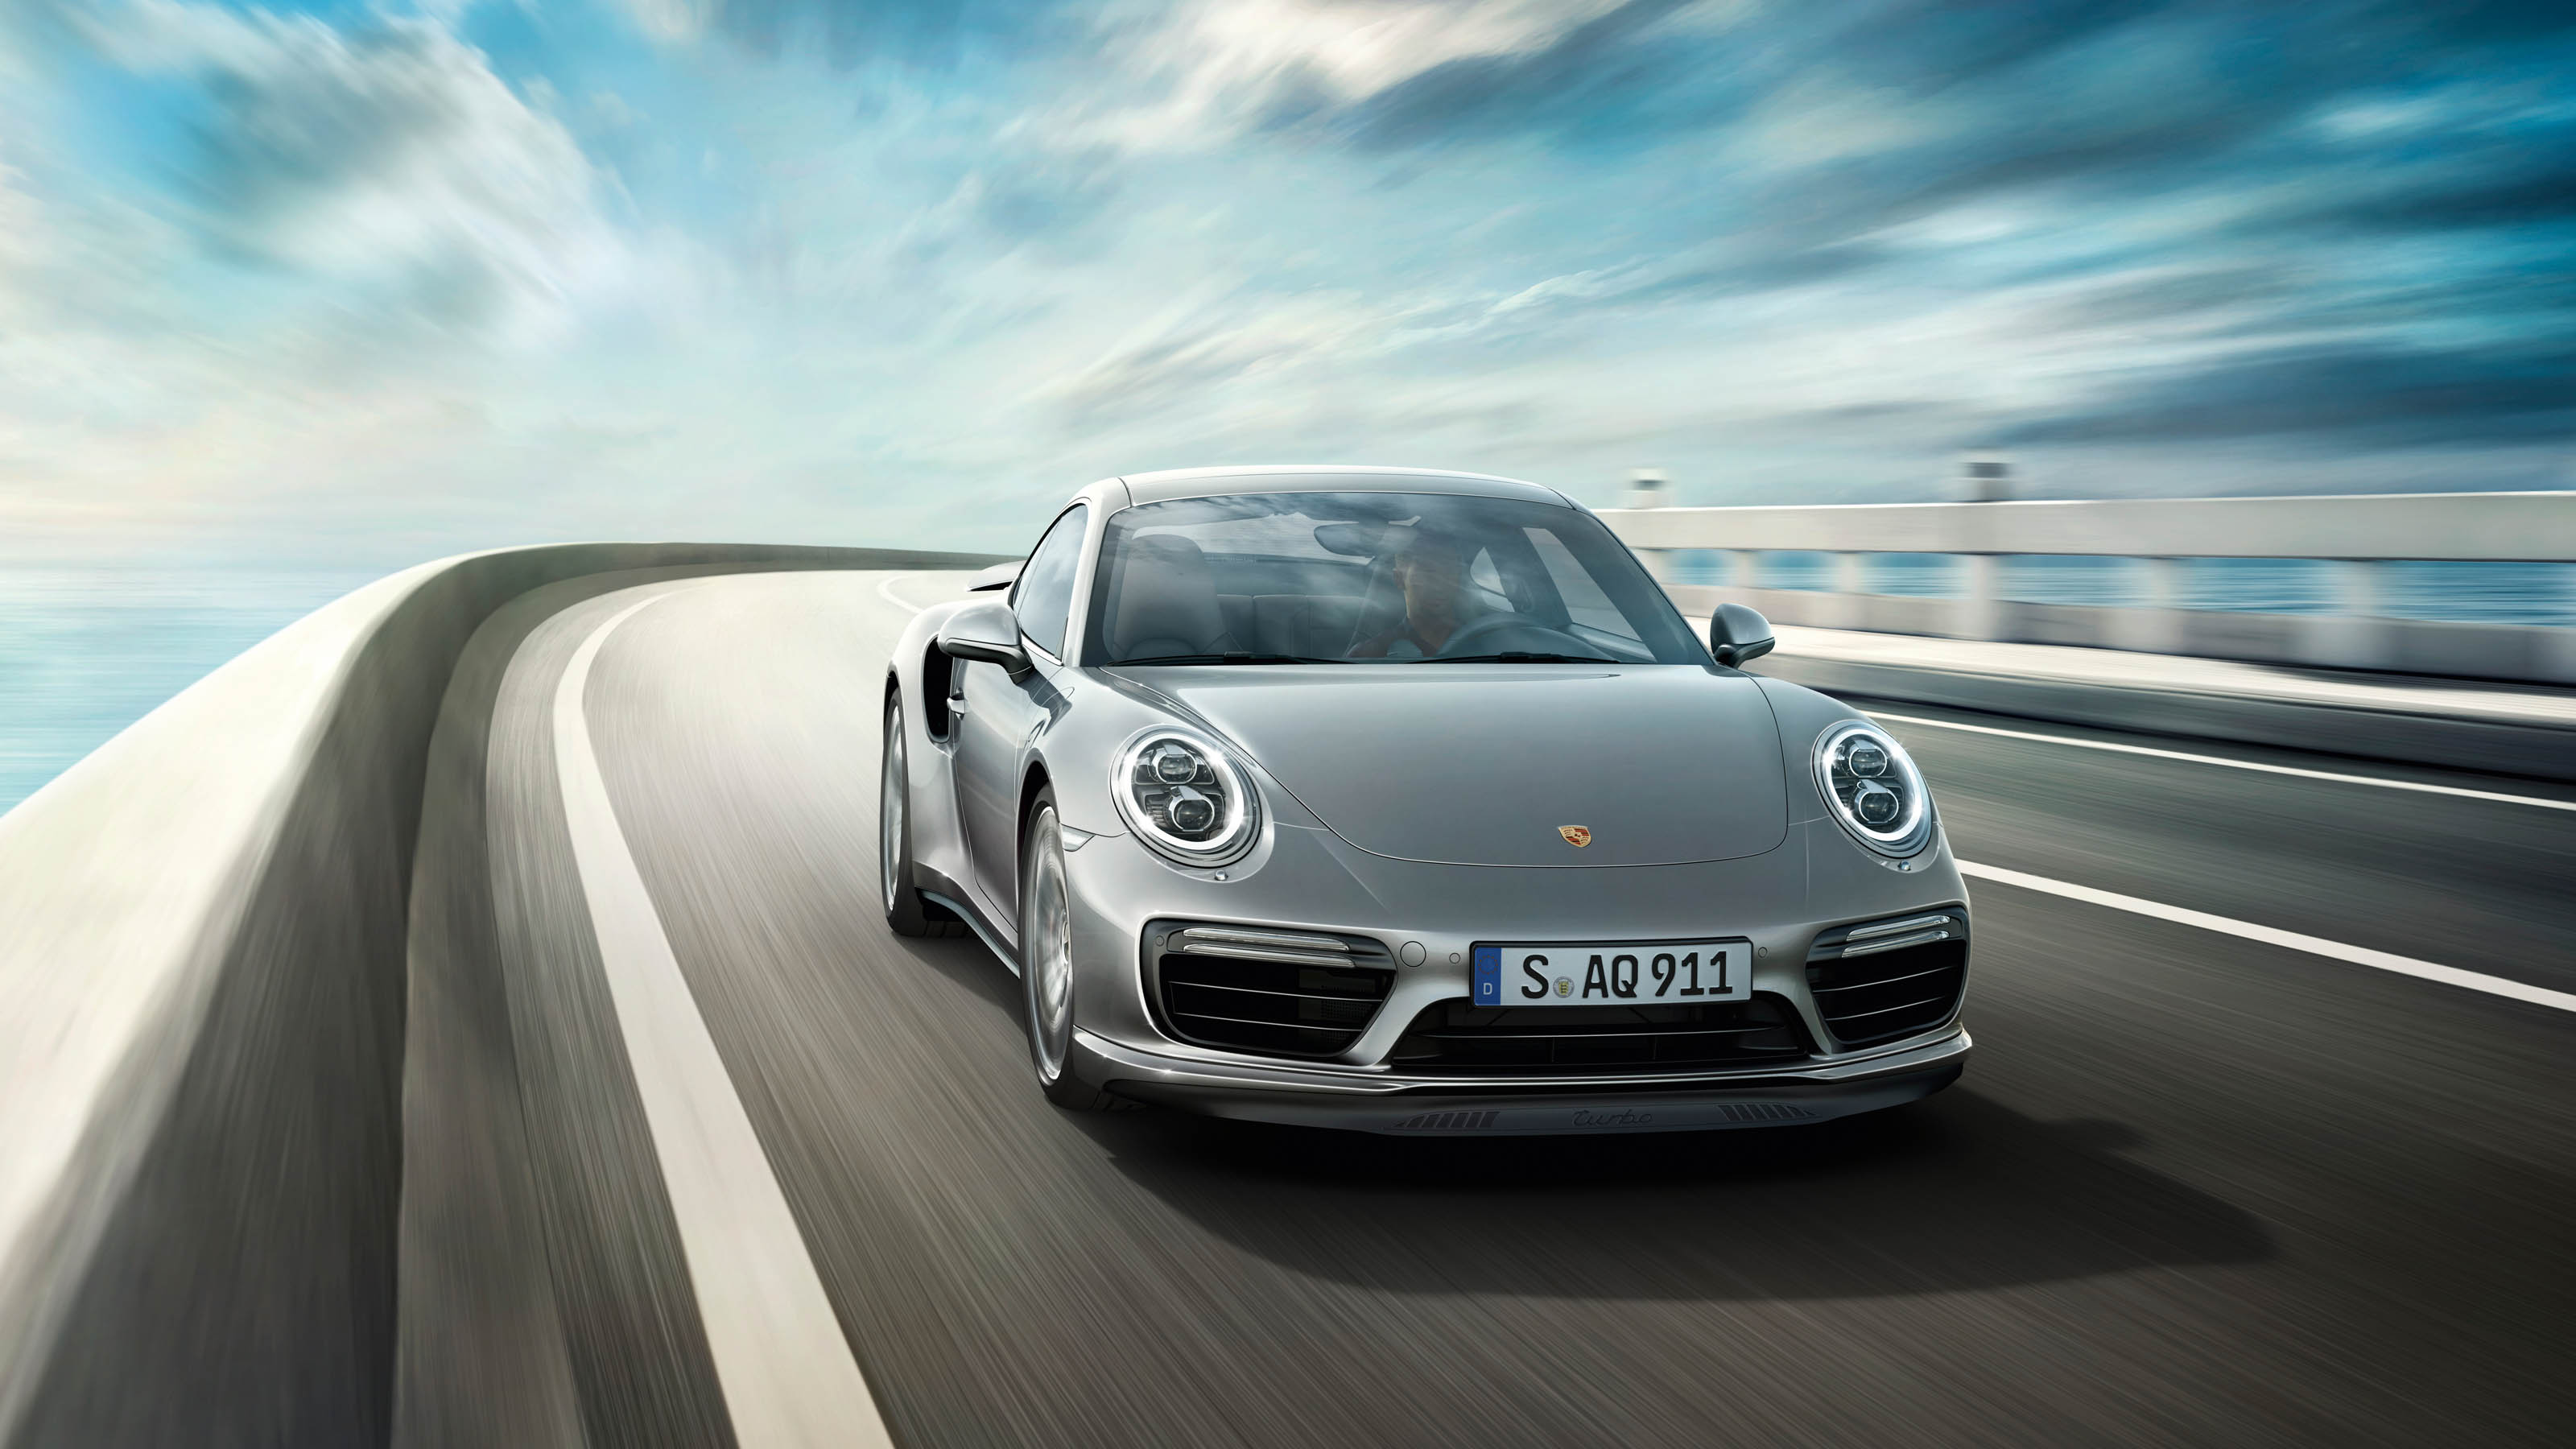 35775 – Porsche 911 Turbo Wallpaper – 3200×1800